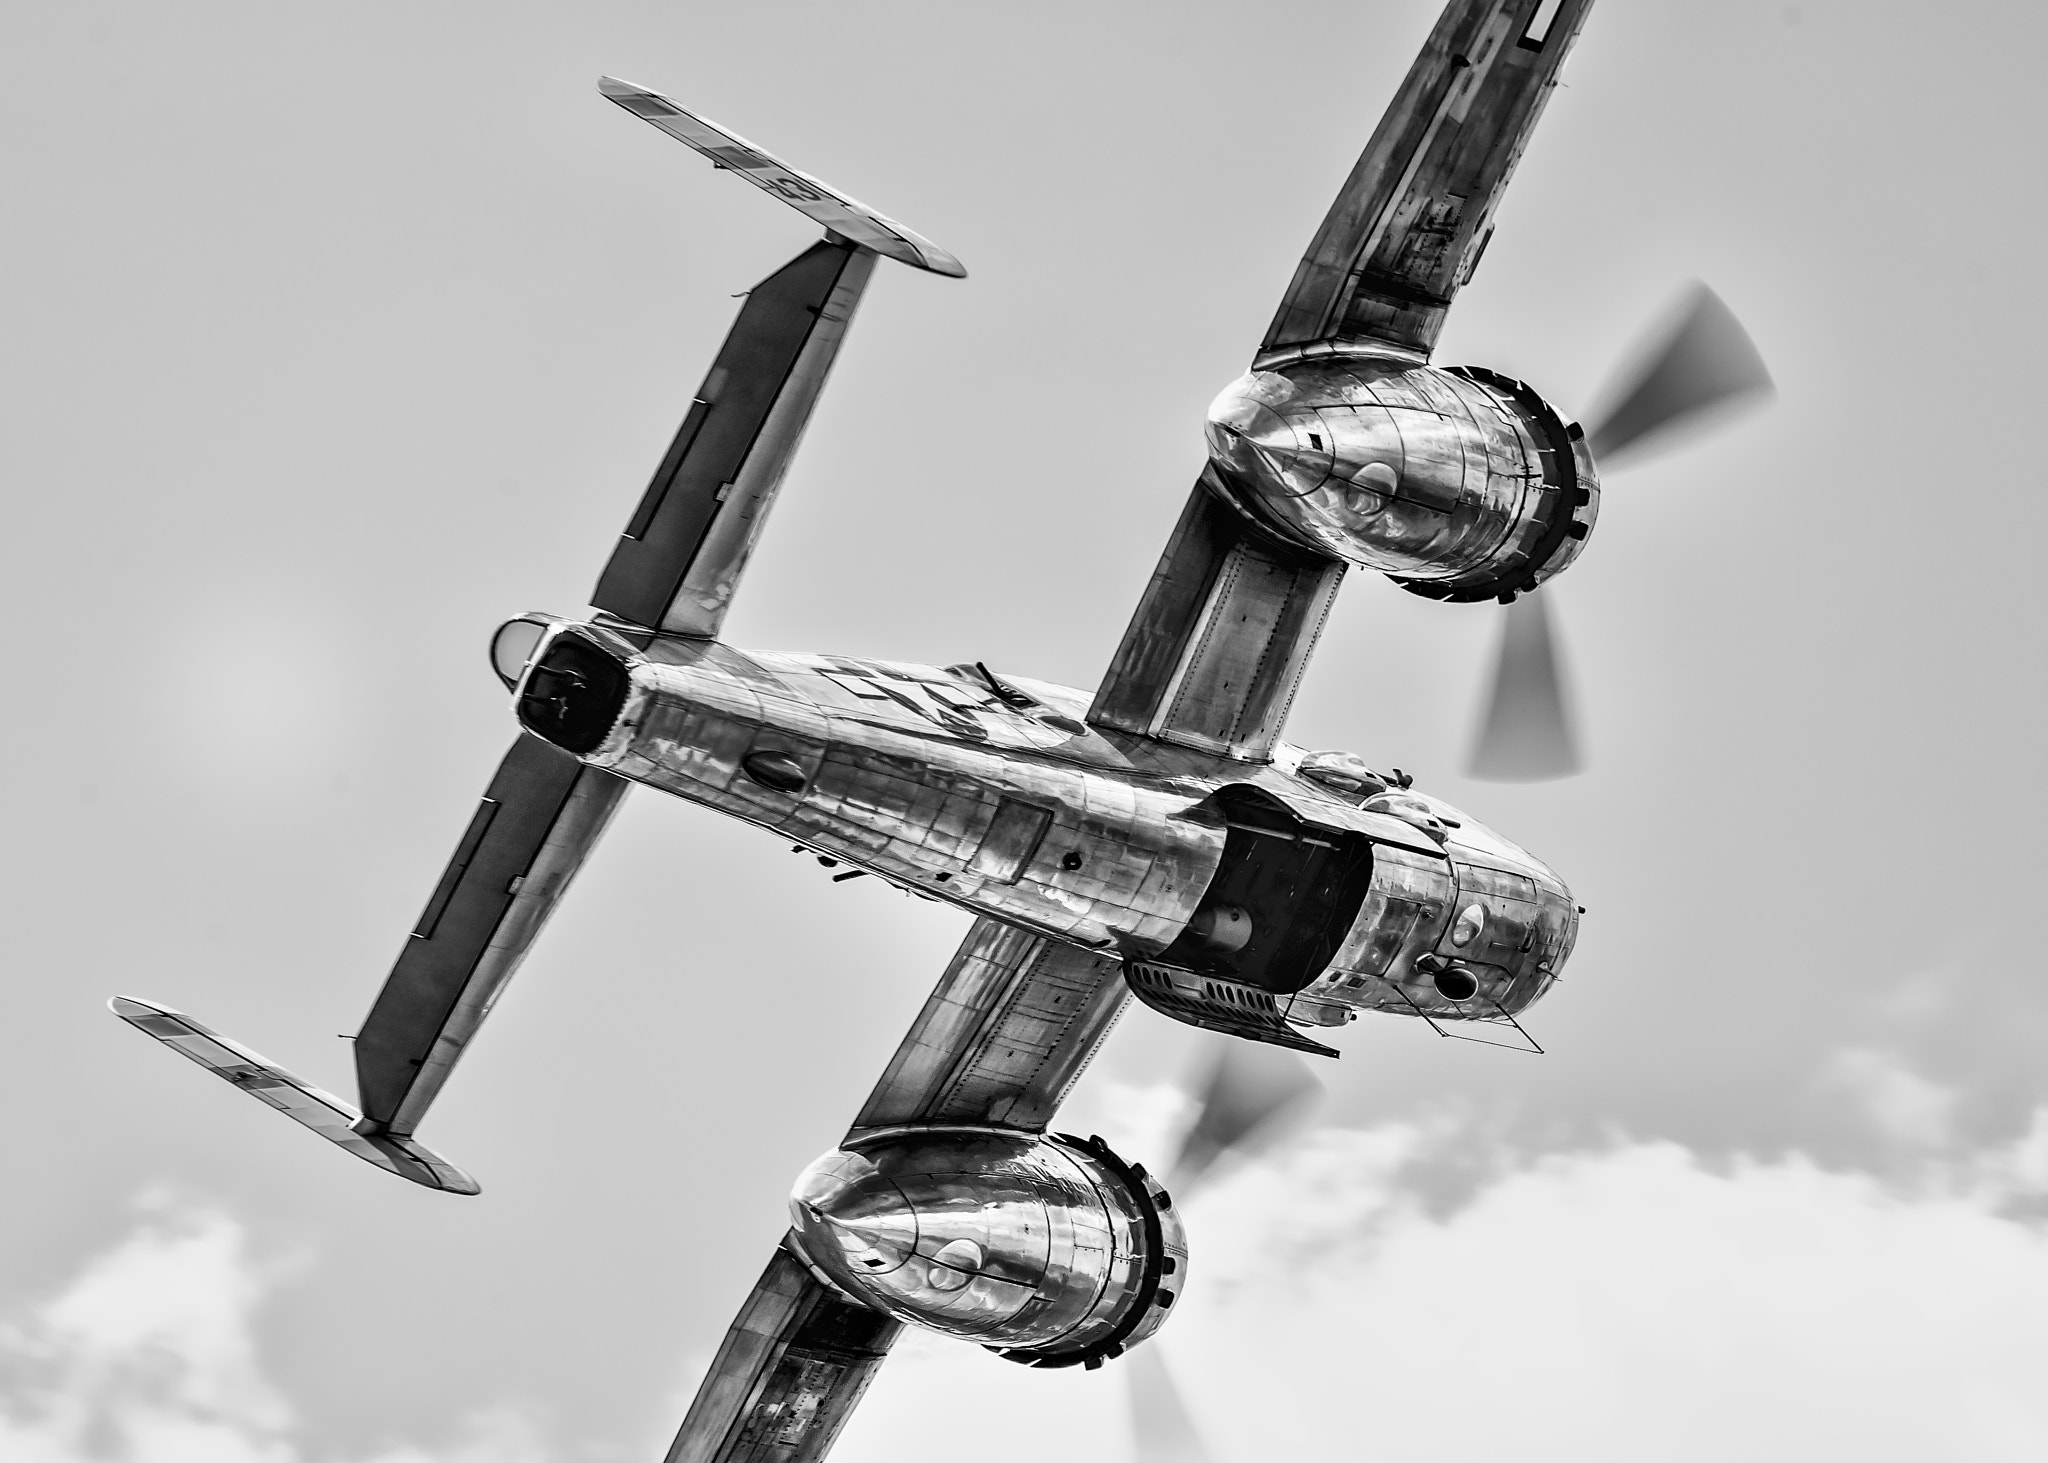 Photograph On Target by Chris Buff on 500px